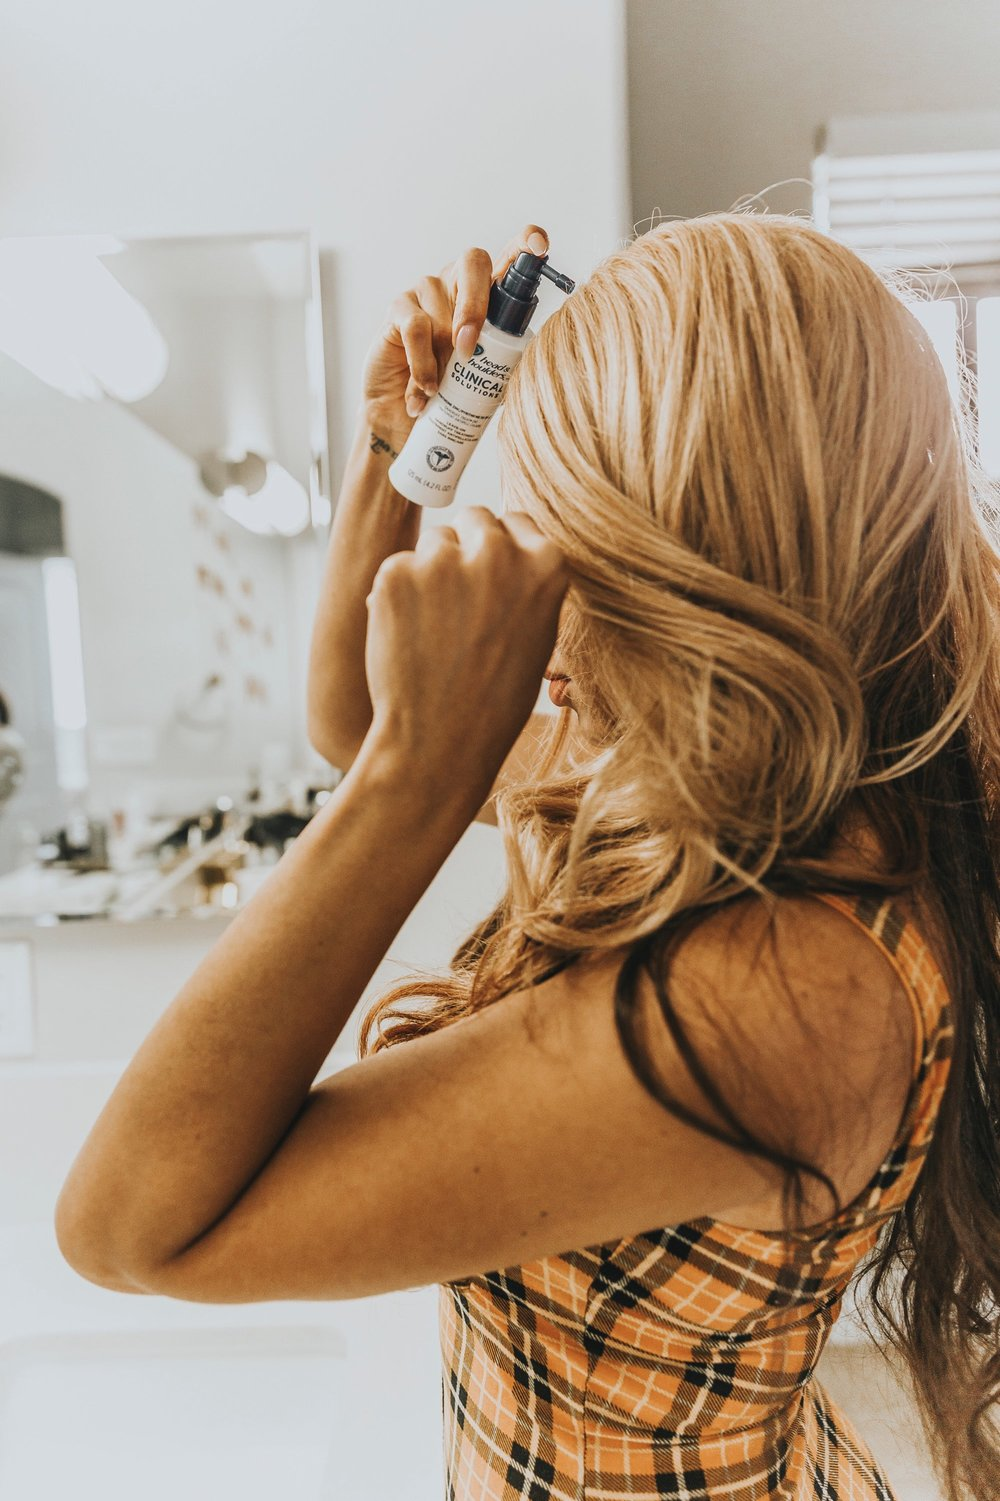 Head and Shoulders Clinical Solutions review featured by popular life and style blogger, Mom Crush Monday